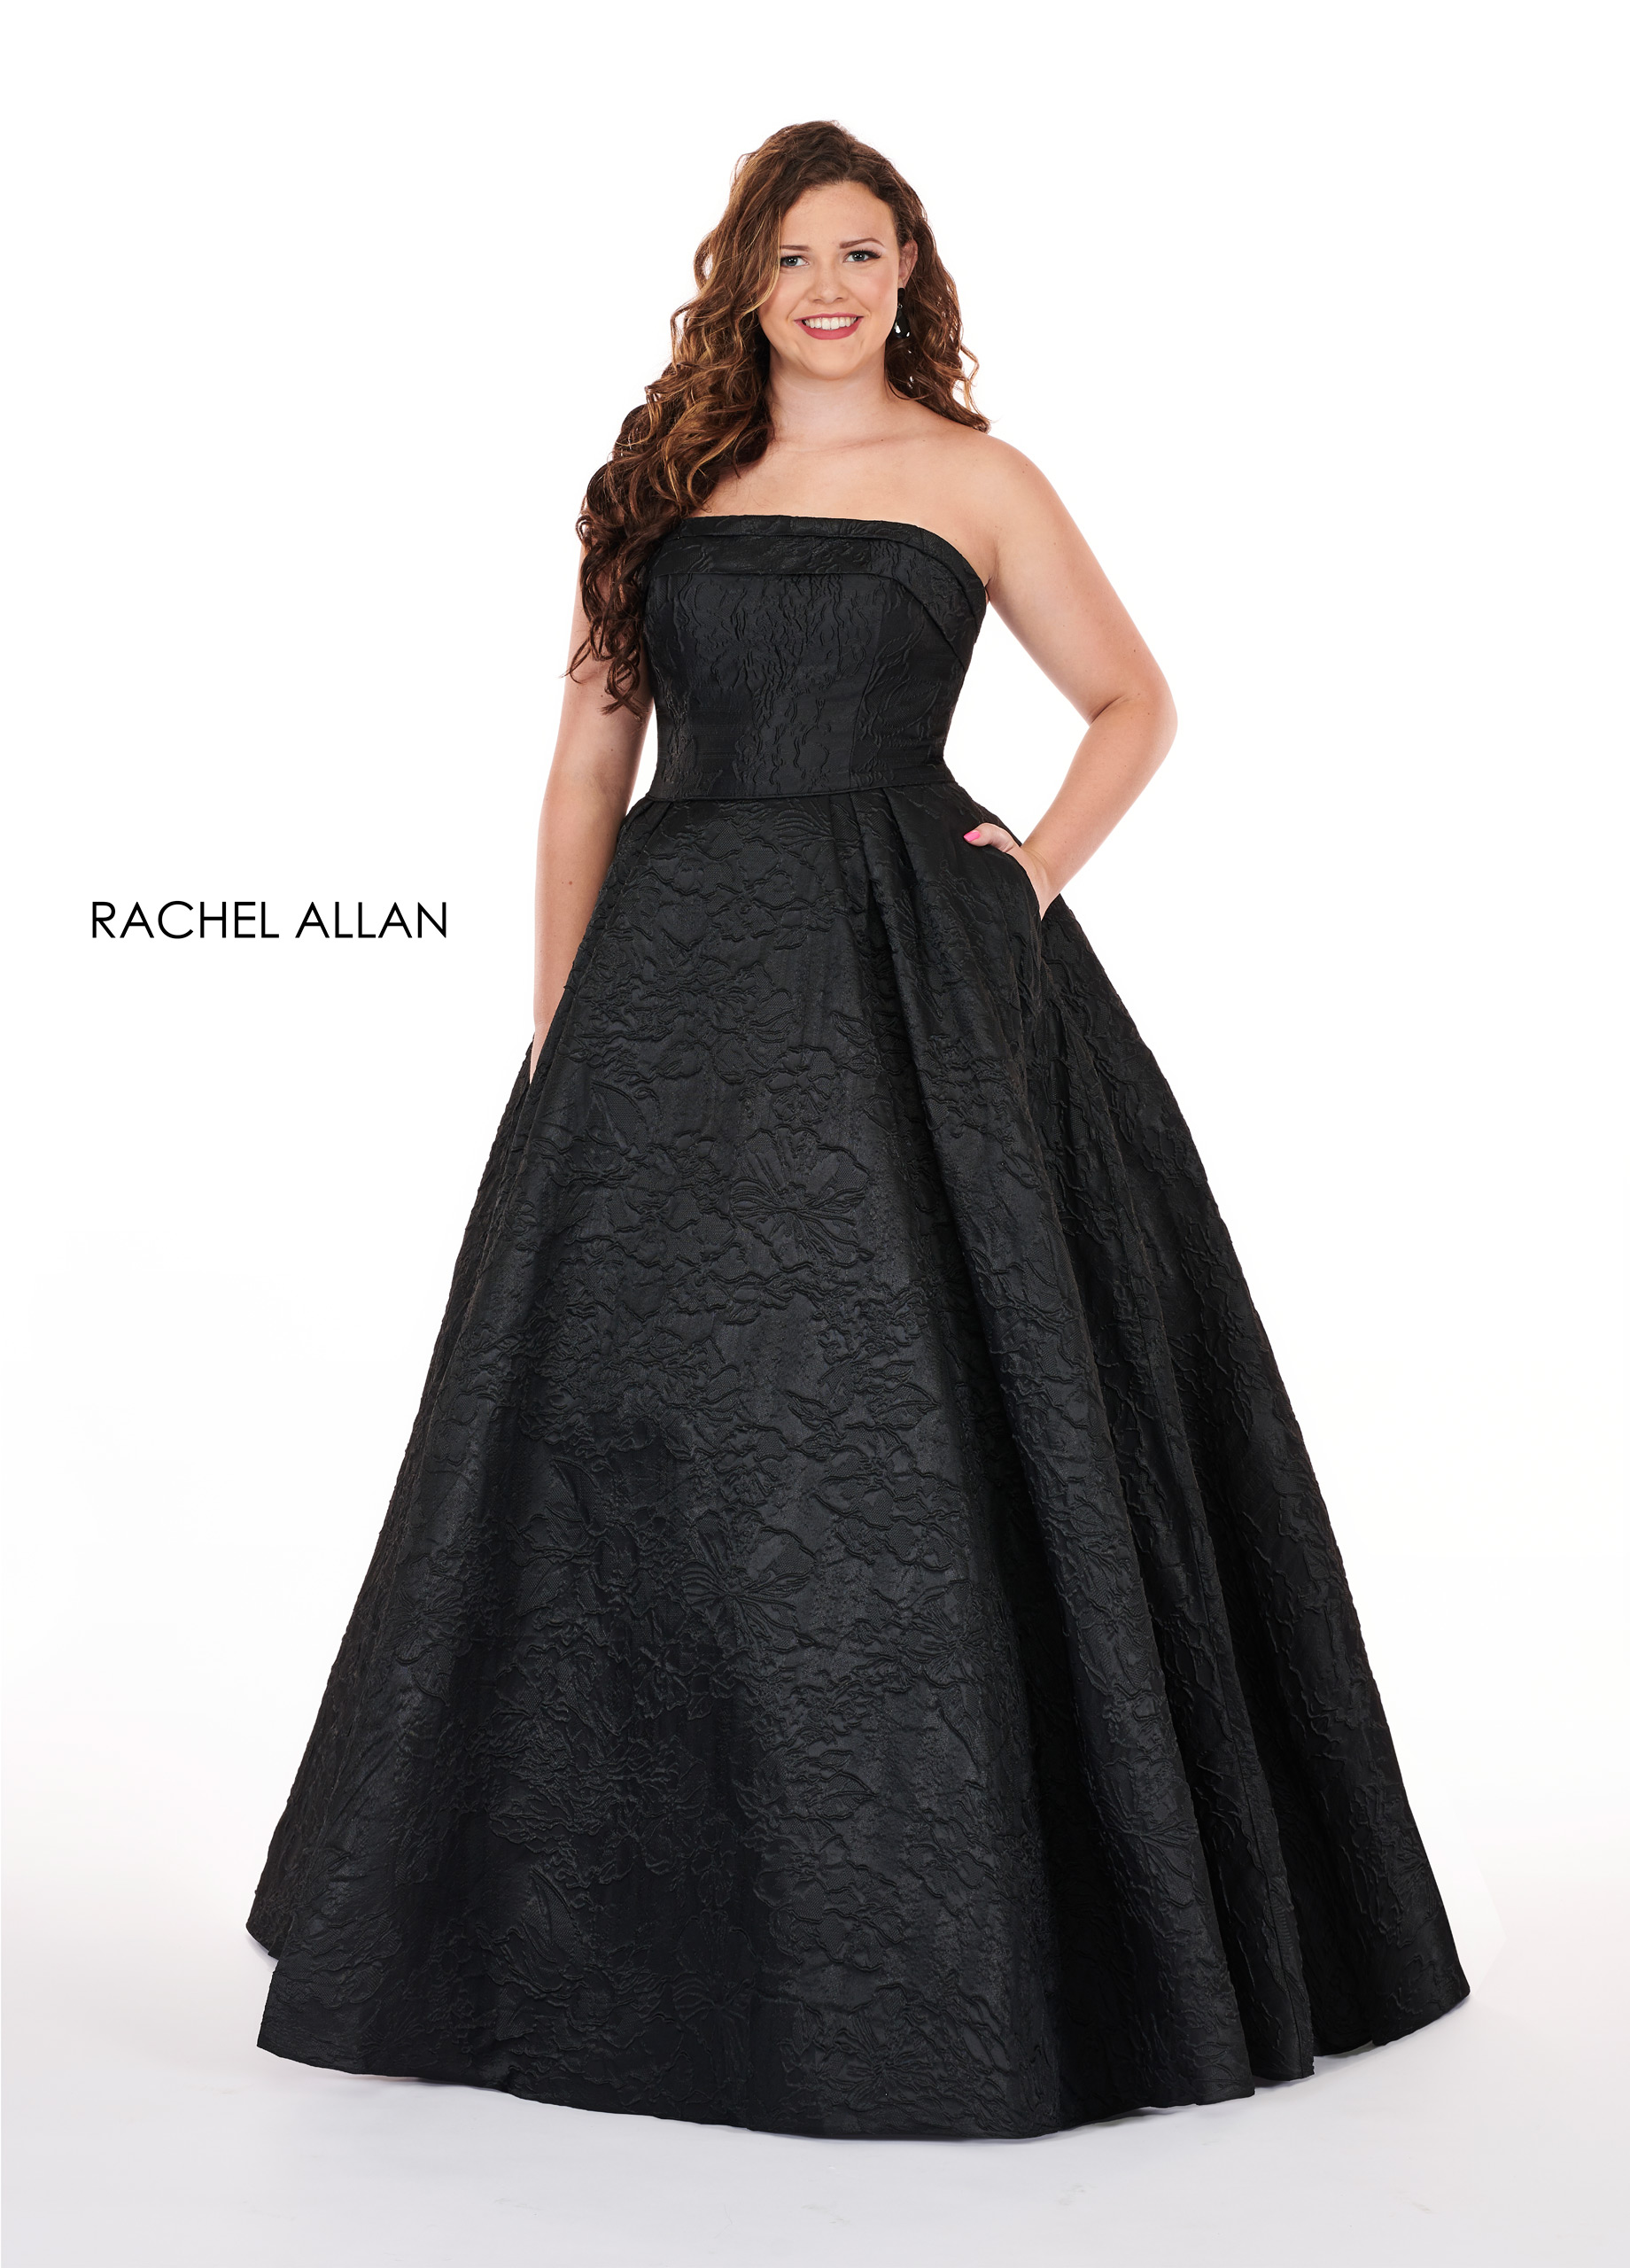 Strapless Ball Gowns Plus Size Dresses in Black Color